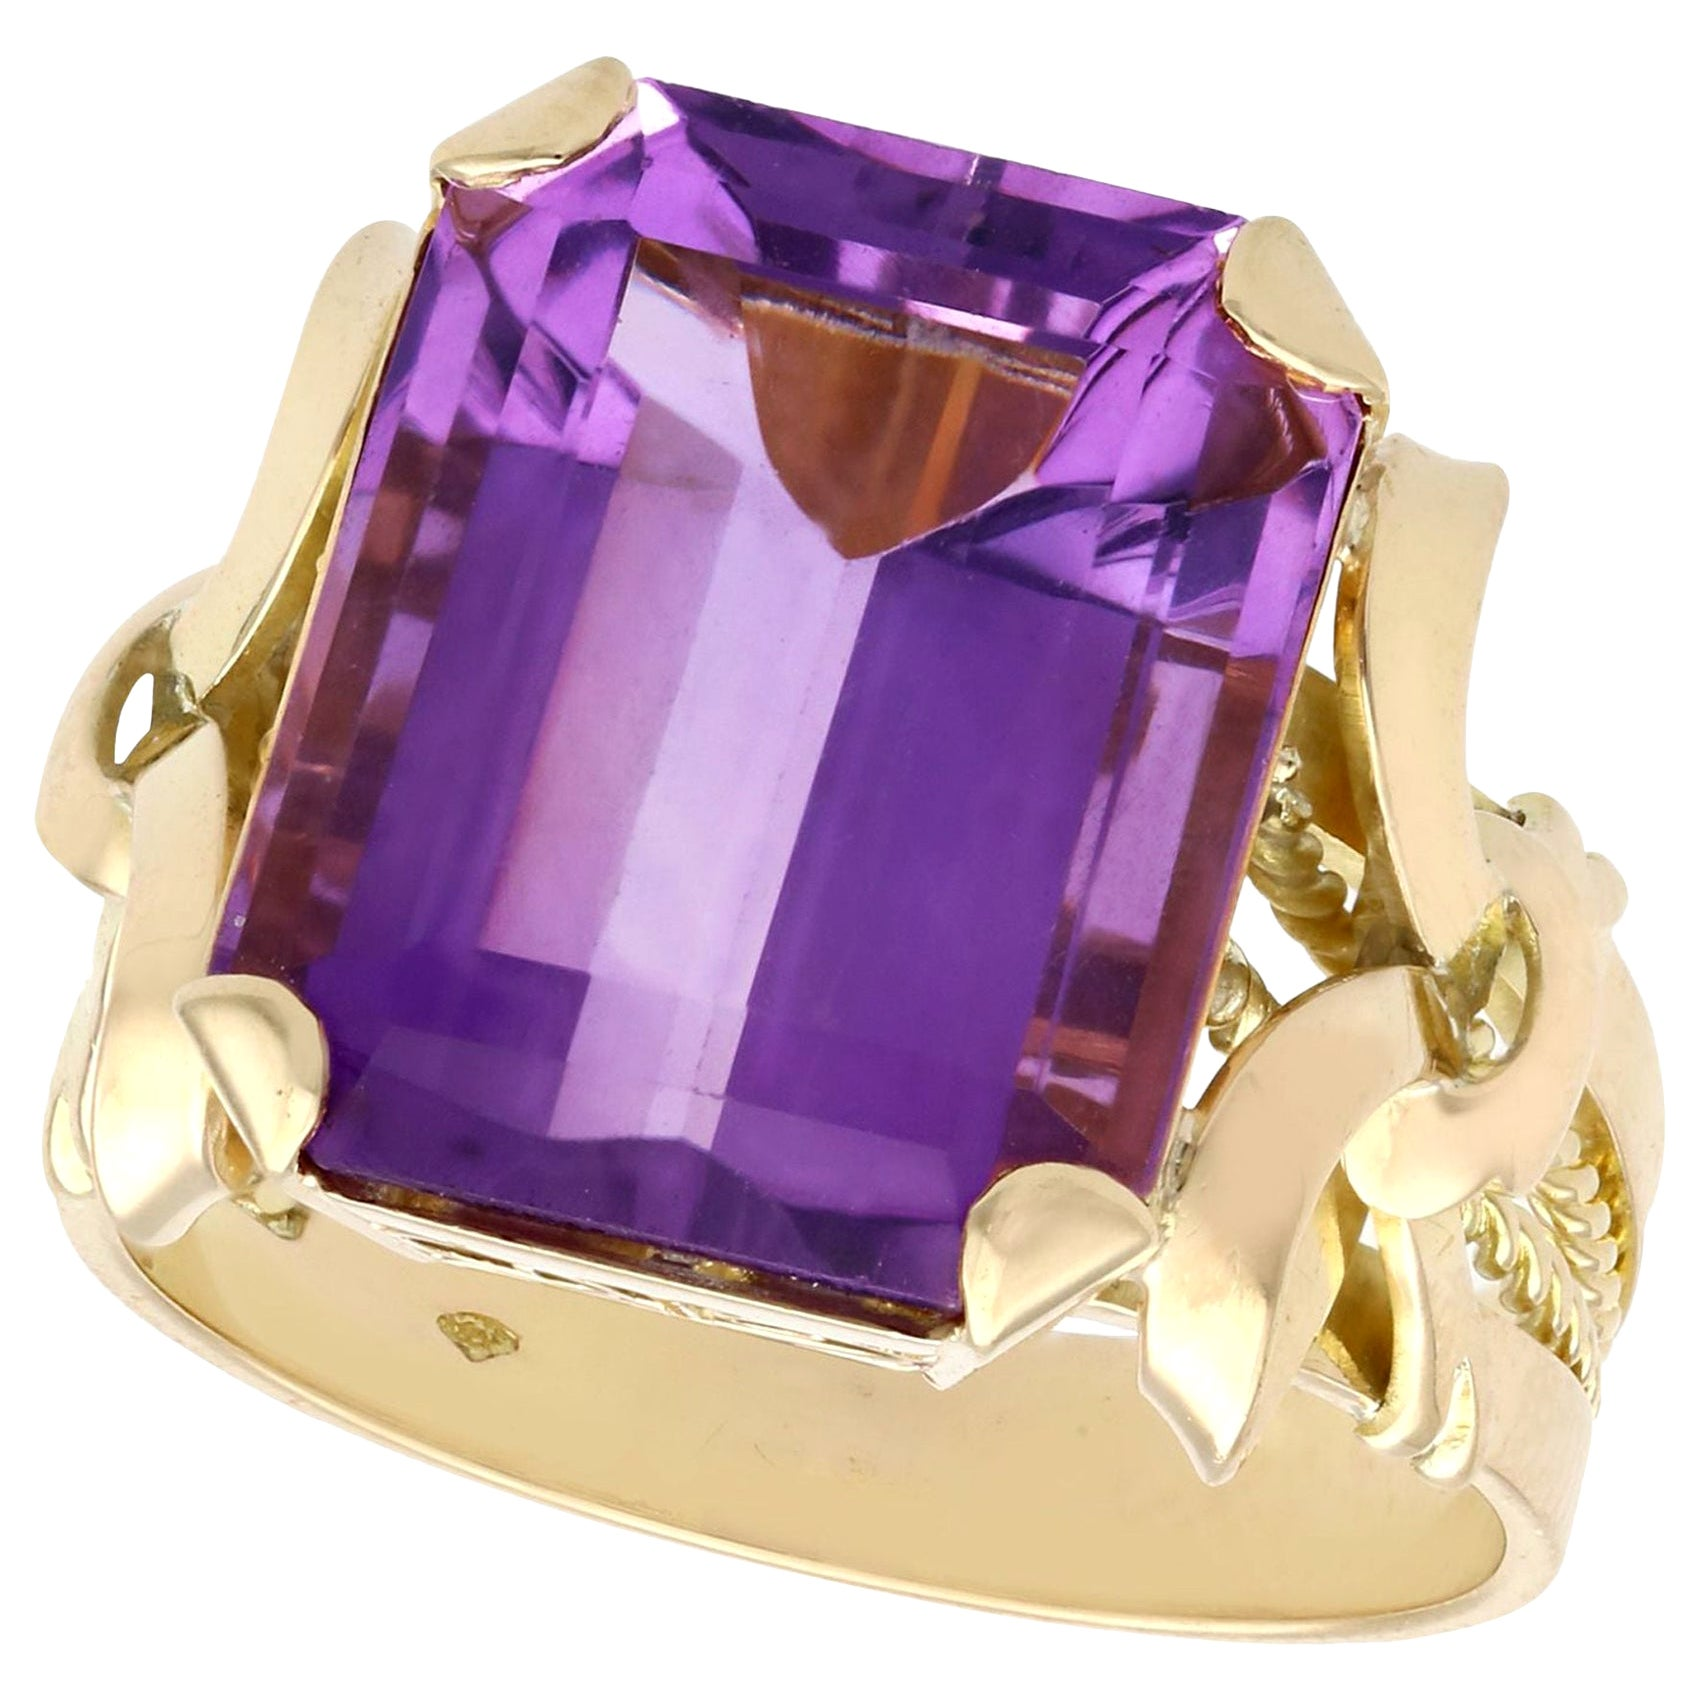 1940s 11.34 Carat Amethyst Yellow Gold Cocktail Ring